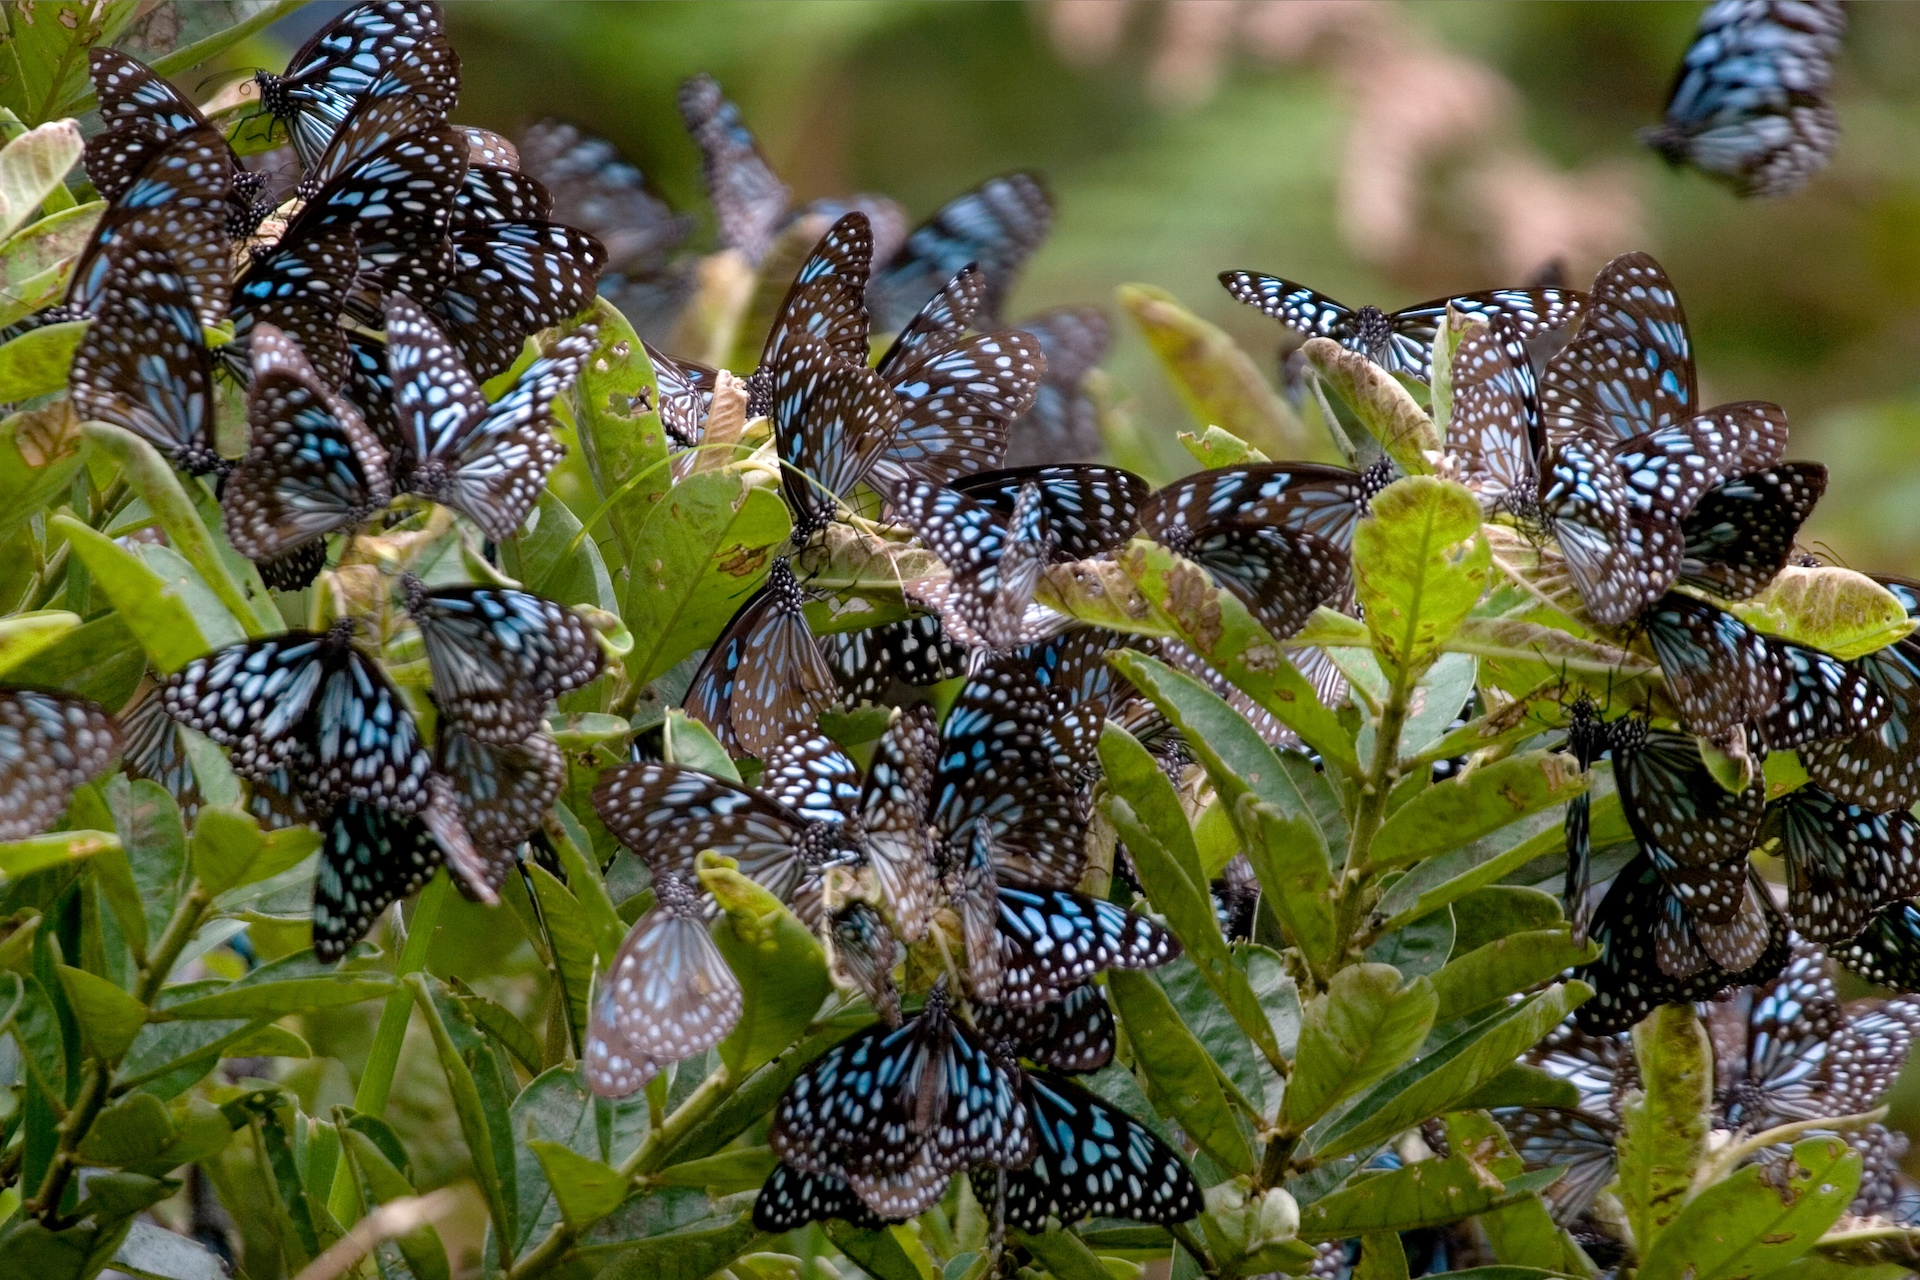 A haven for butterflies, including these blue tiger butterflies, the park harbours many threatened species of fauna. Photo: NP Jayan